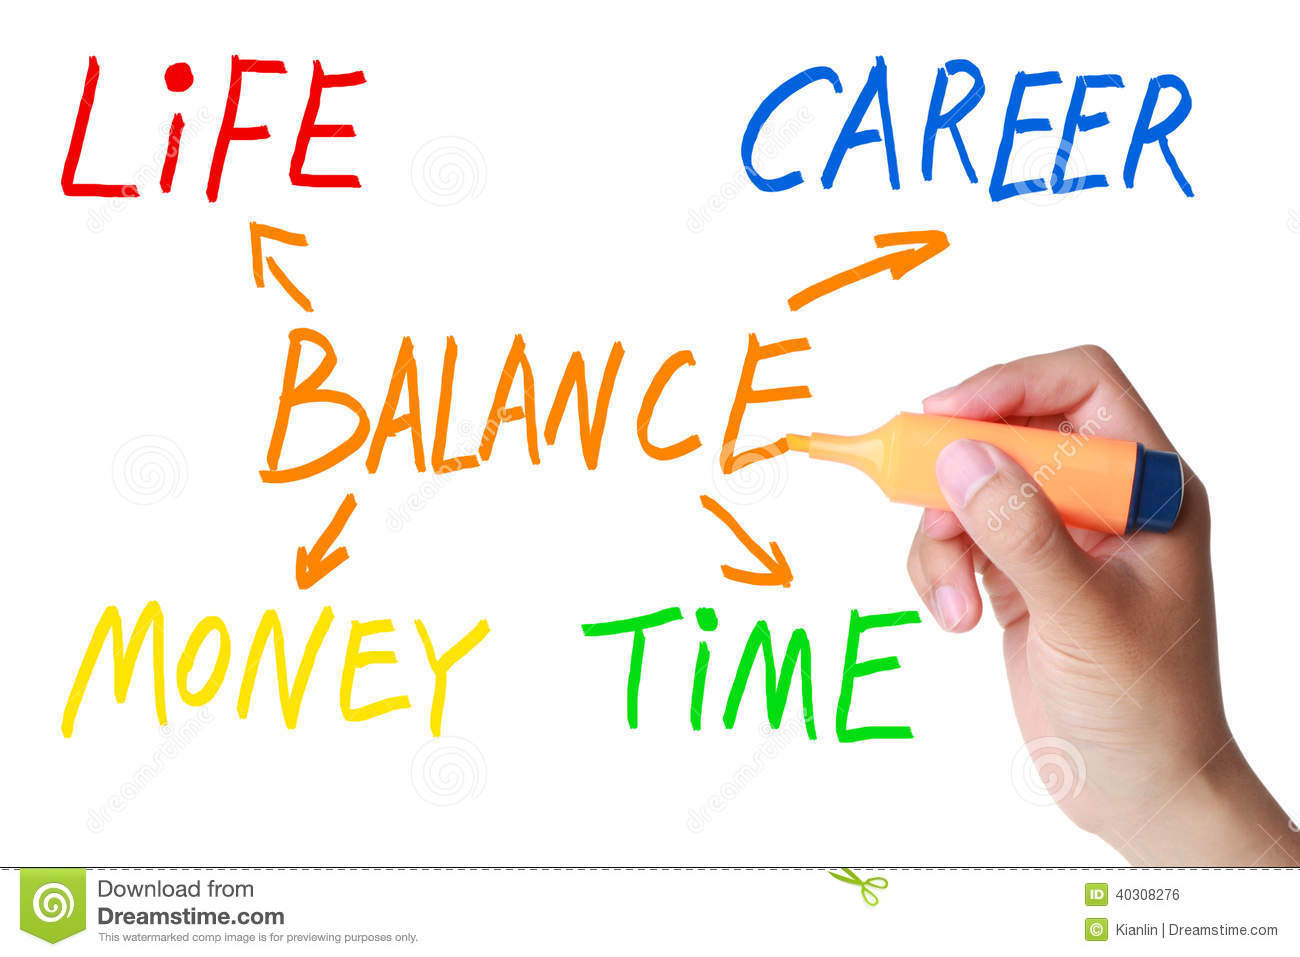 how to choose a career in life